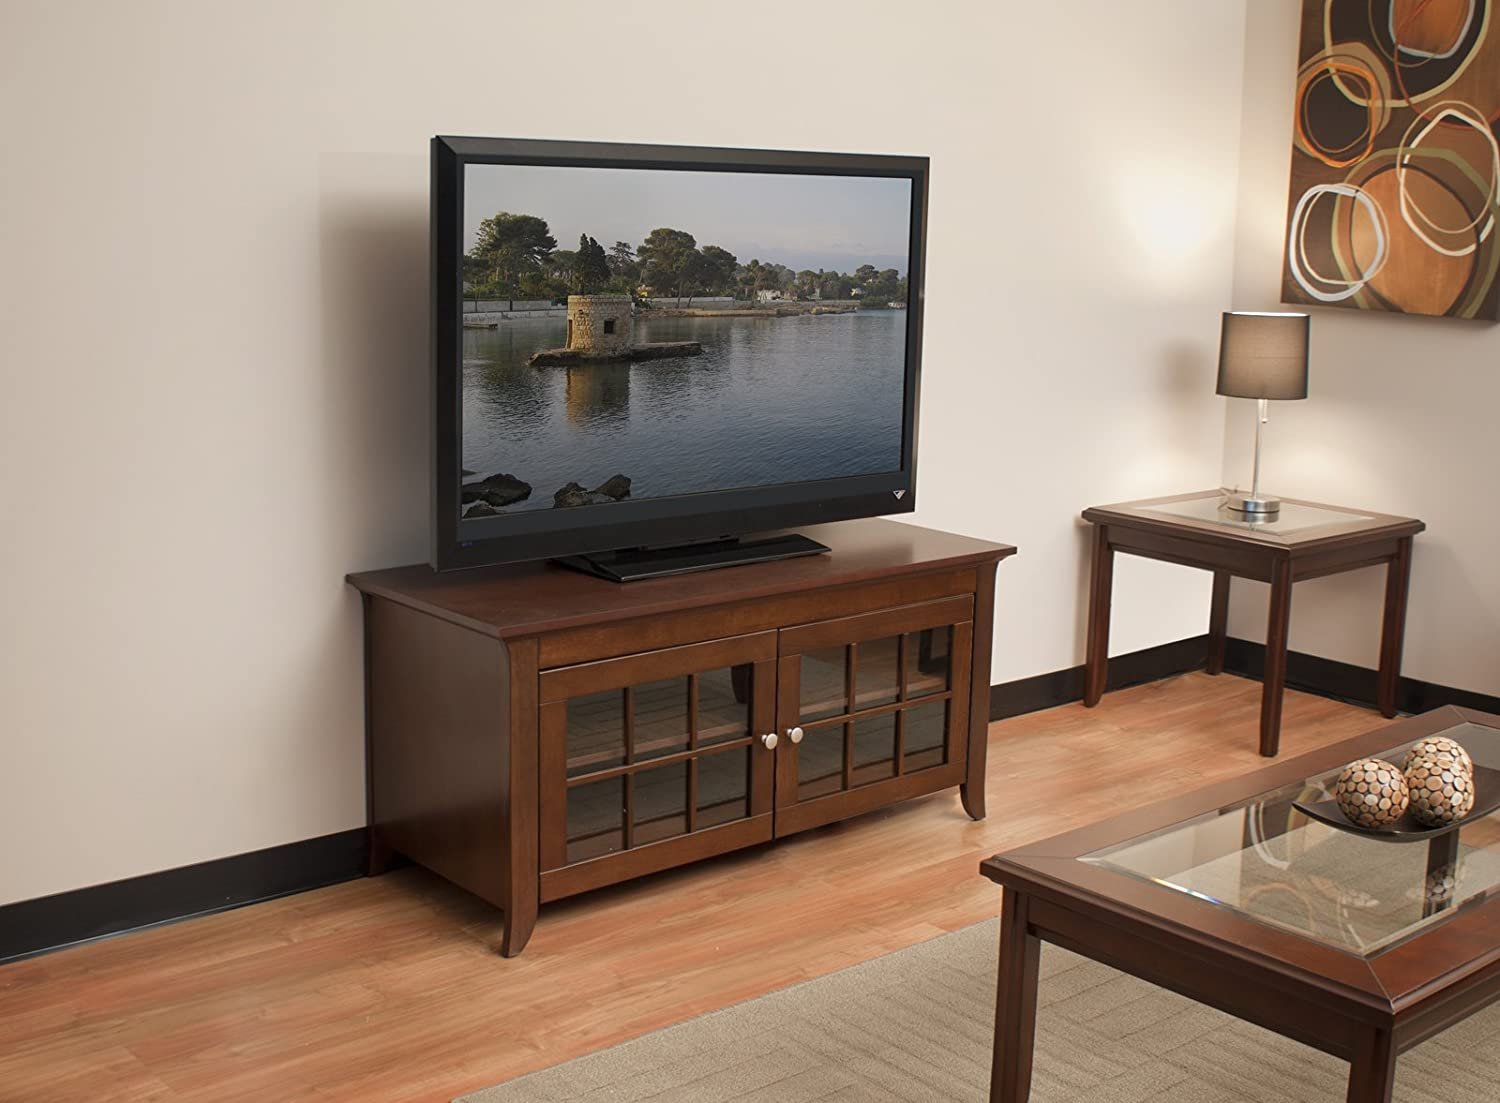 CRE48 48-Inch Wide Flat Panel TV Credenza - Walnut Beautiful ...